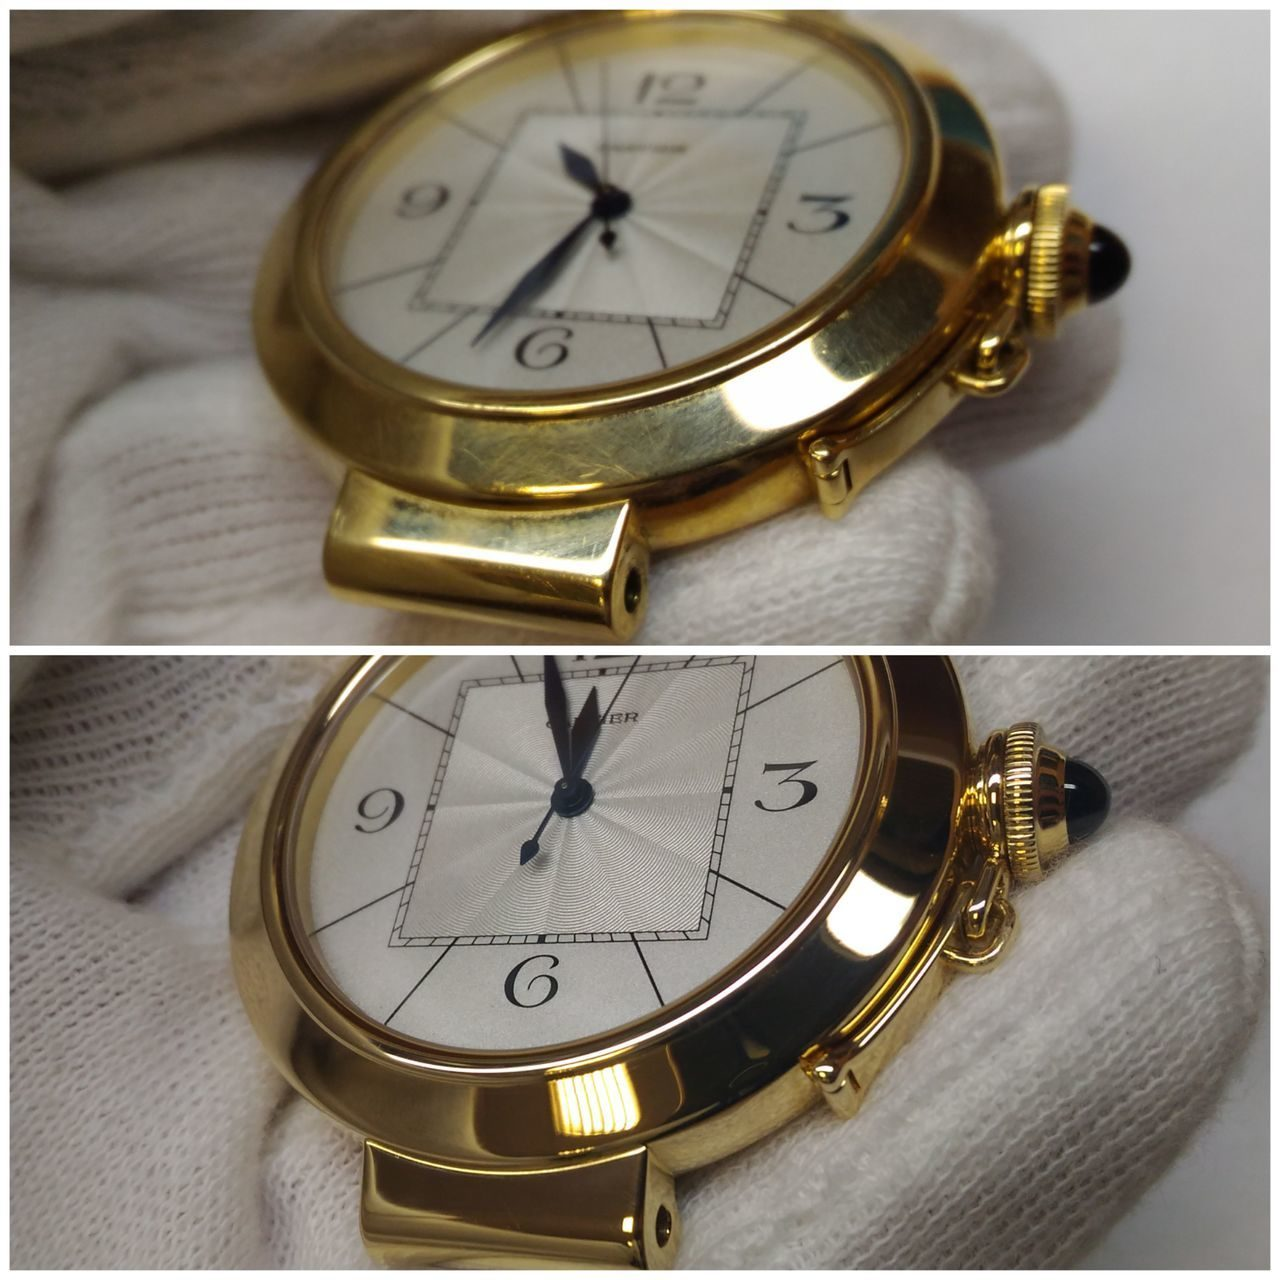 Polishing of golden watches